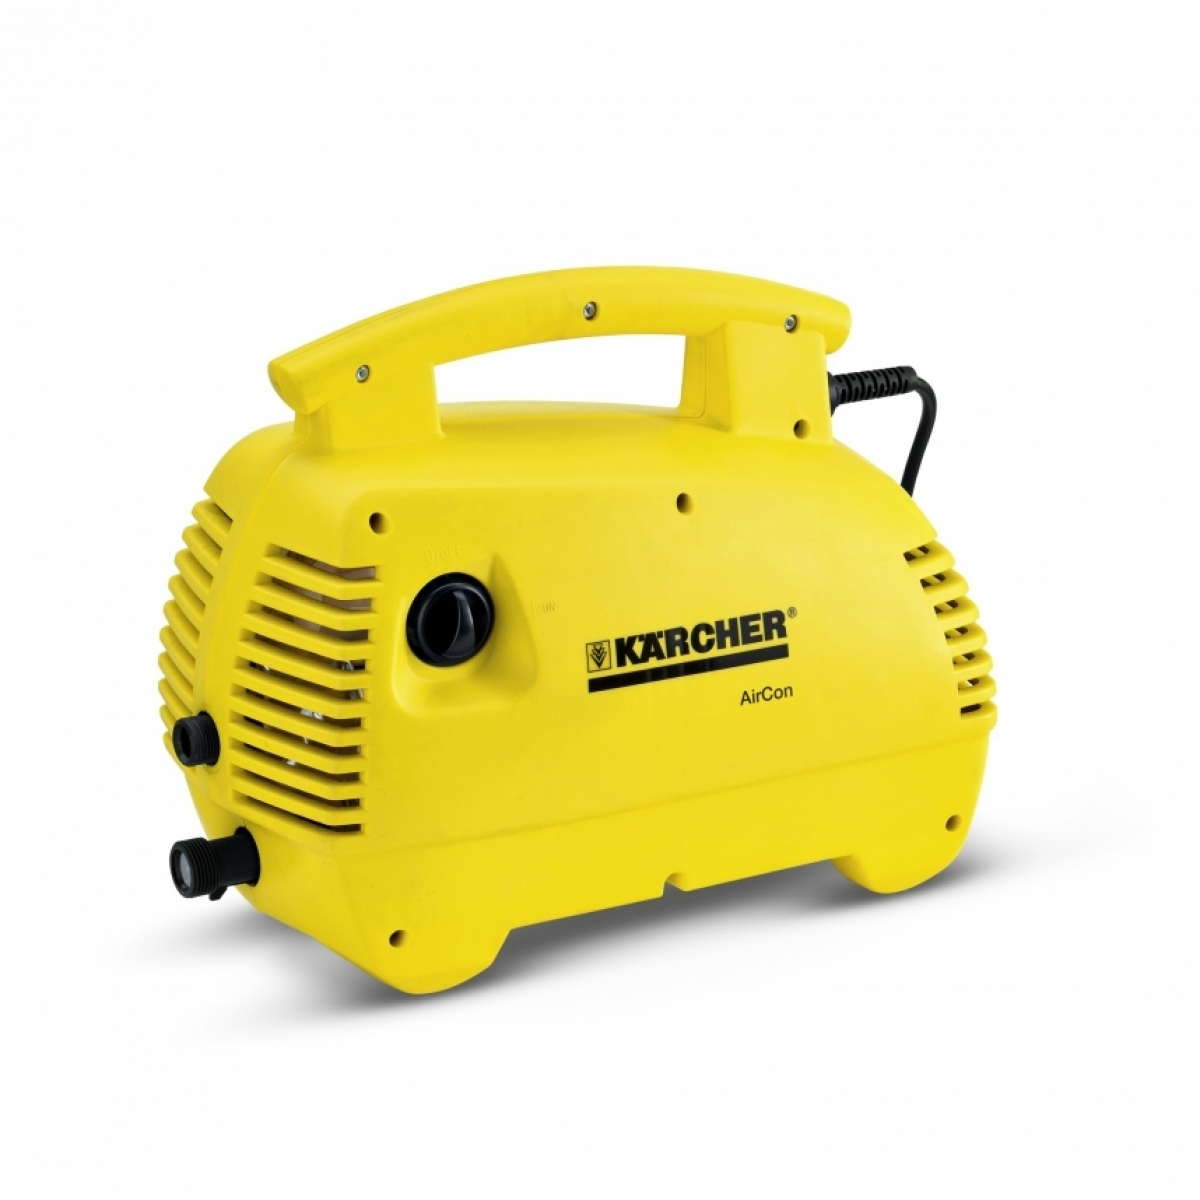 karcher air con high pressure washer my power tools. Black Bedroom Furniture Sets. Home Design Ideas